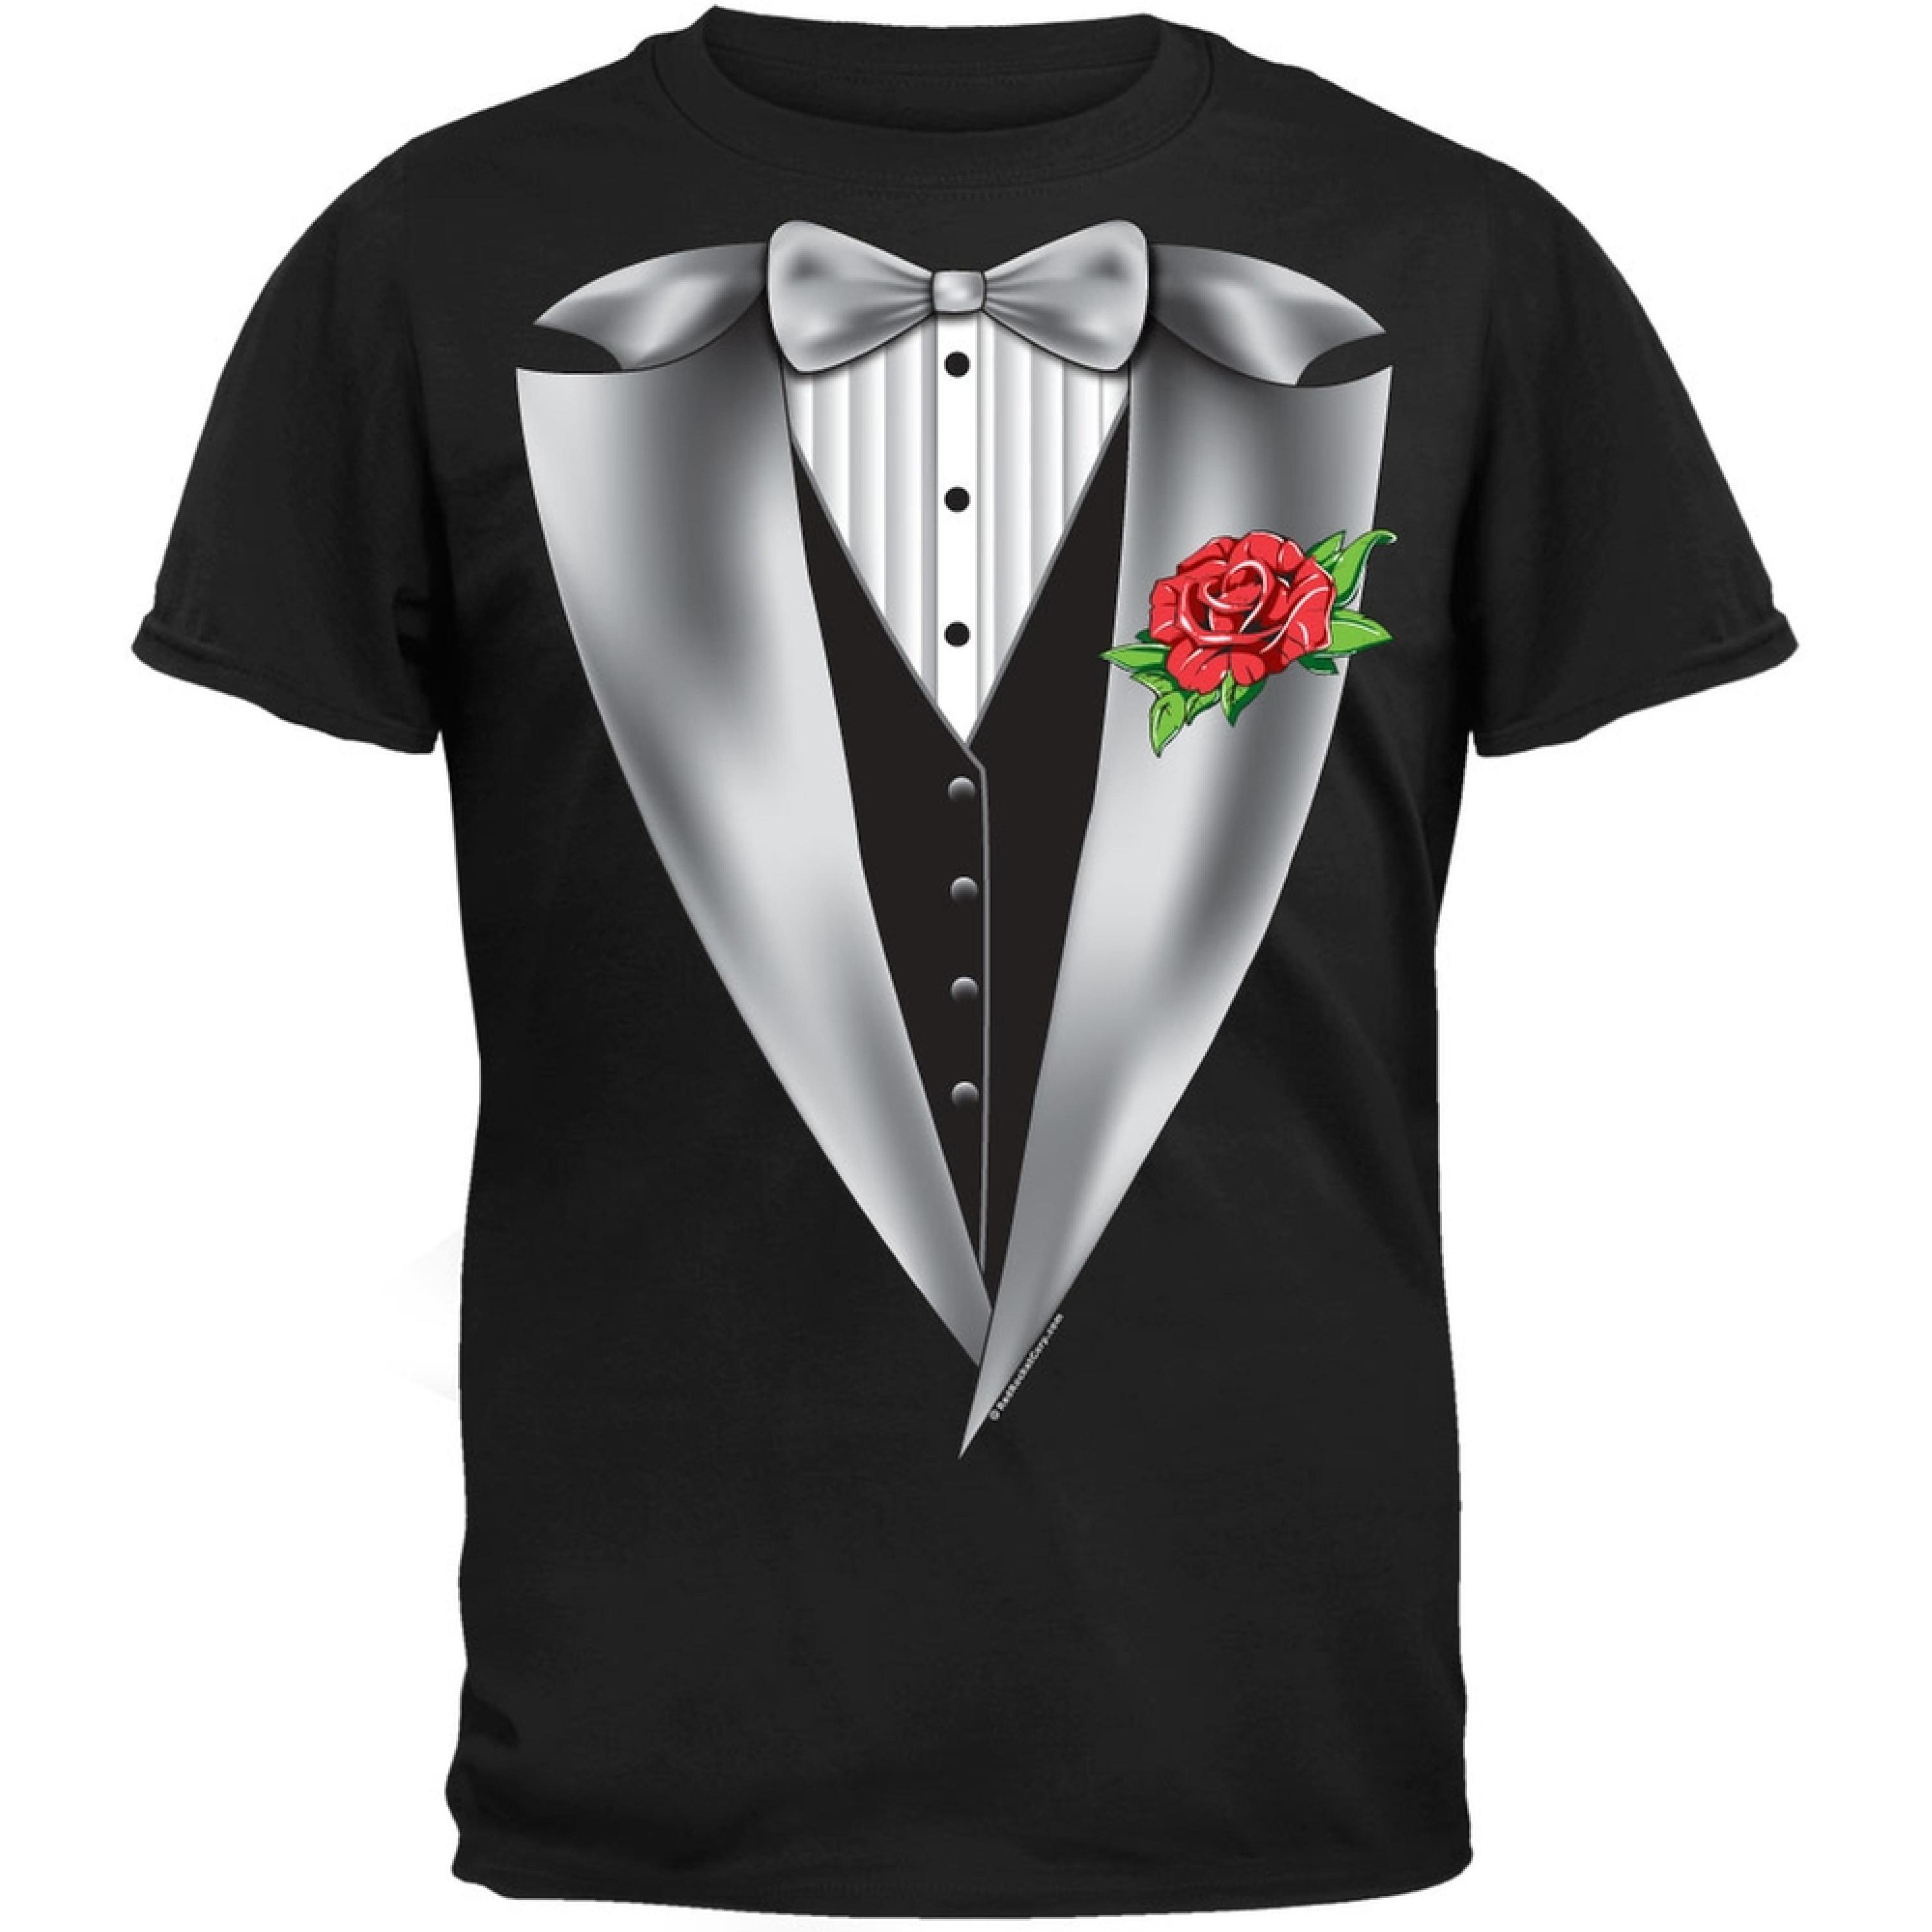 High Class Tuxedo Black Adult T-Shirt